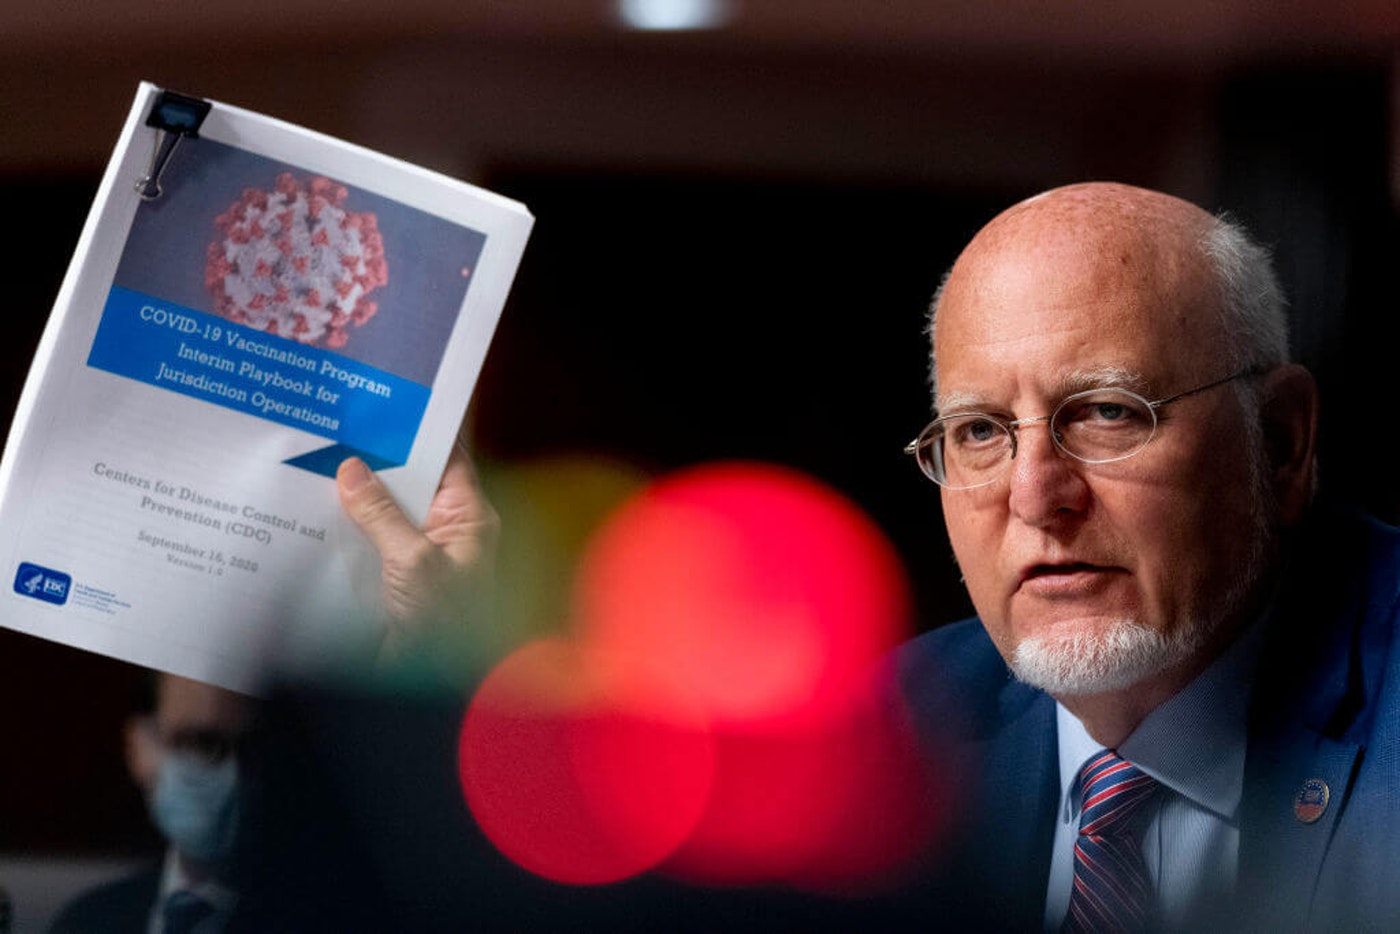 Centers for Disease Control and Prevention (CDC) Director Dr. Robert Redfield holds up a CDC document while he speaks at a hearing of the Senate Appropriations subcommittee reviewing coronavirus response efforts on September 16, 2020 in Washington, DC.  (Photo by Andrew Harnik-Pool/Getty Images)